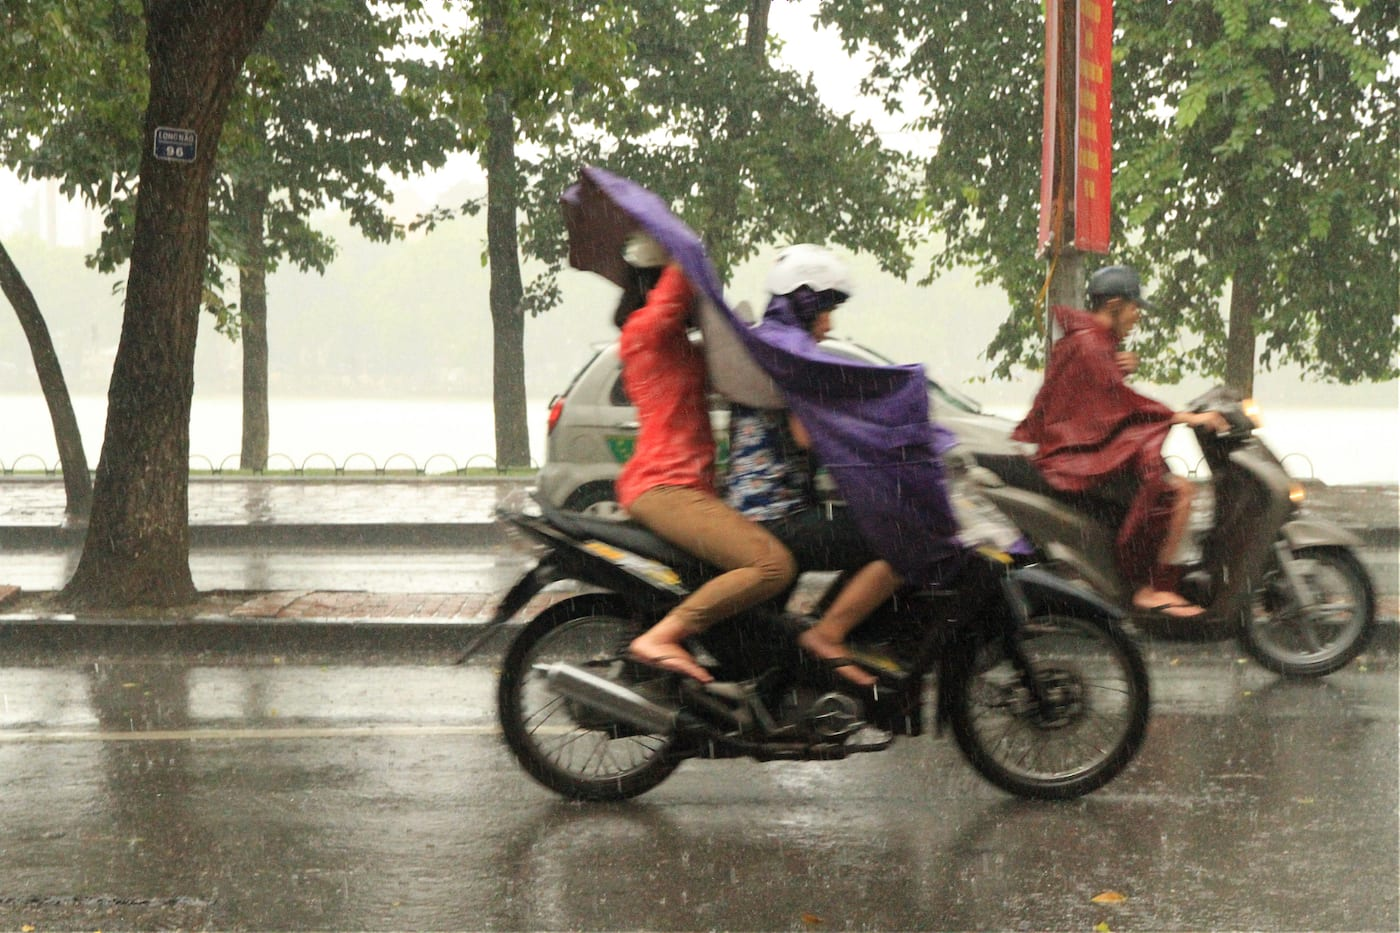 Hanoi raining in August